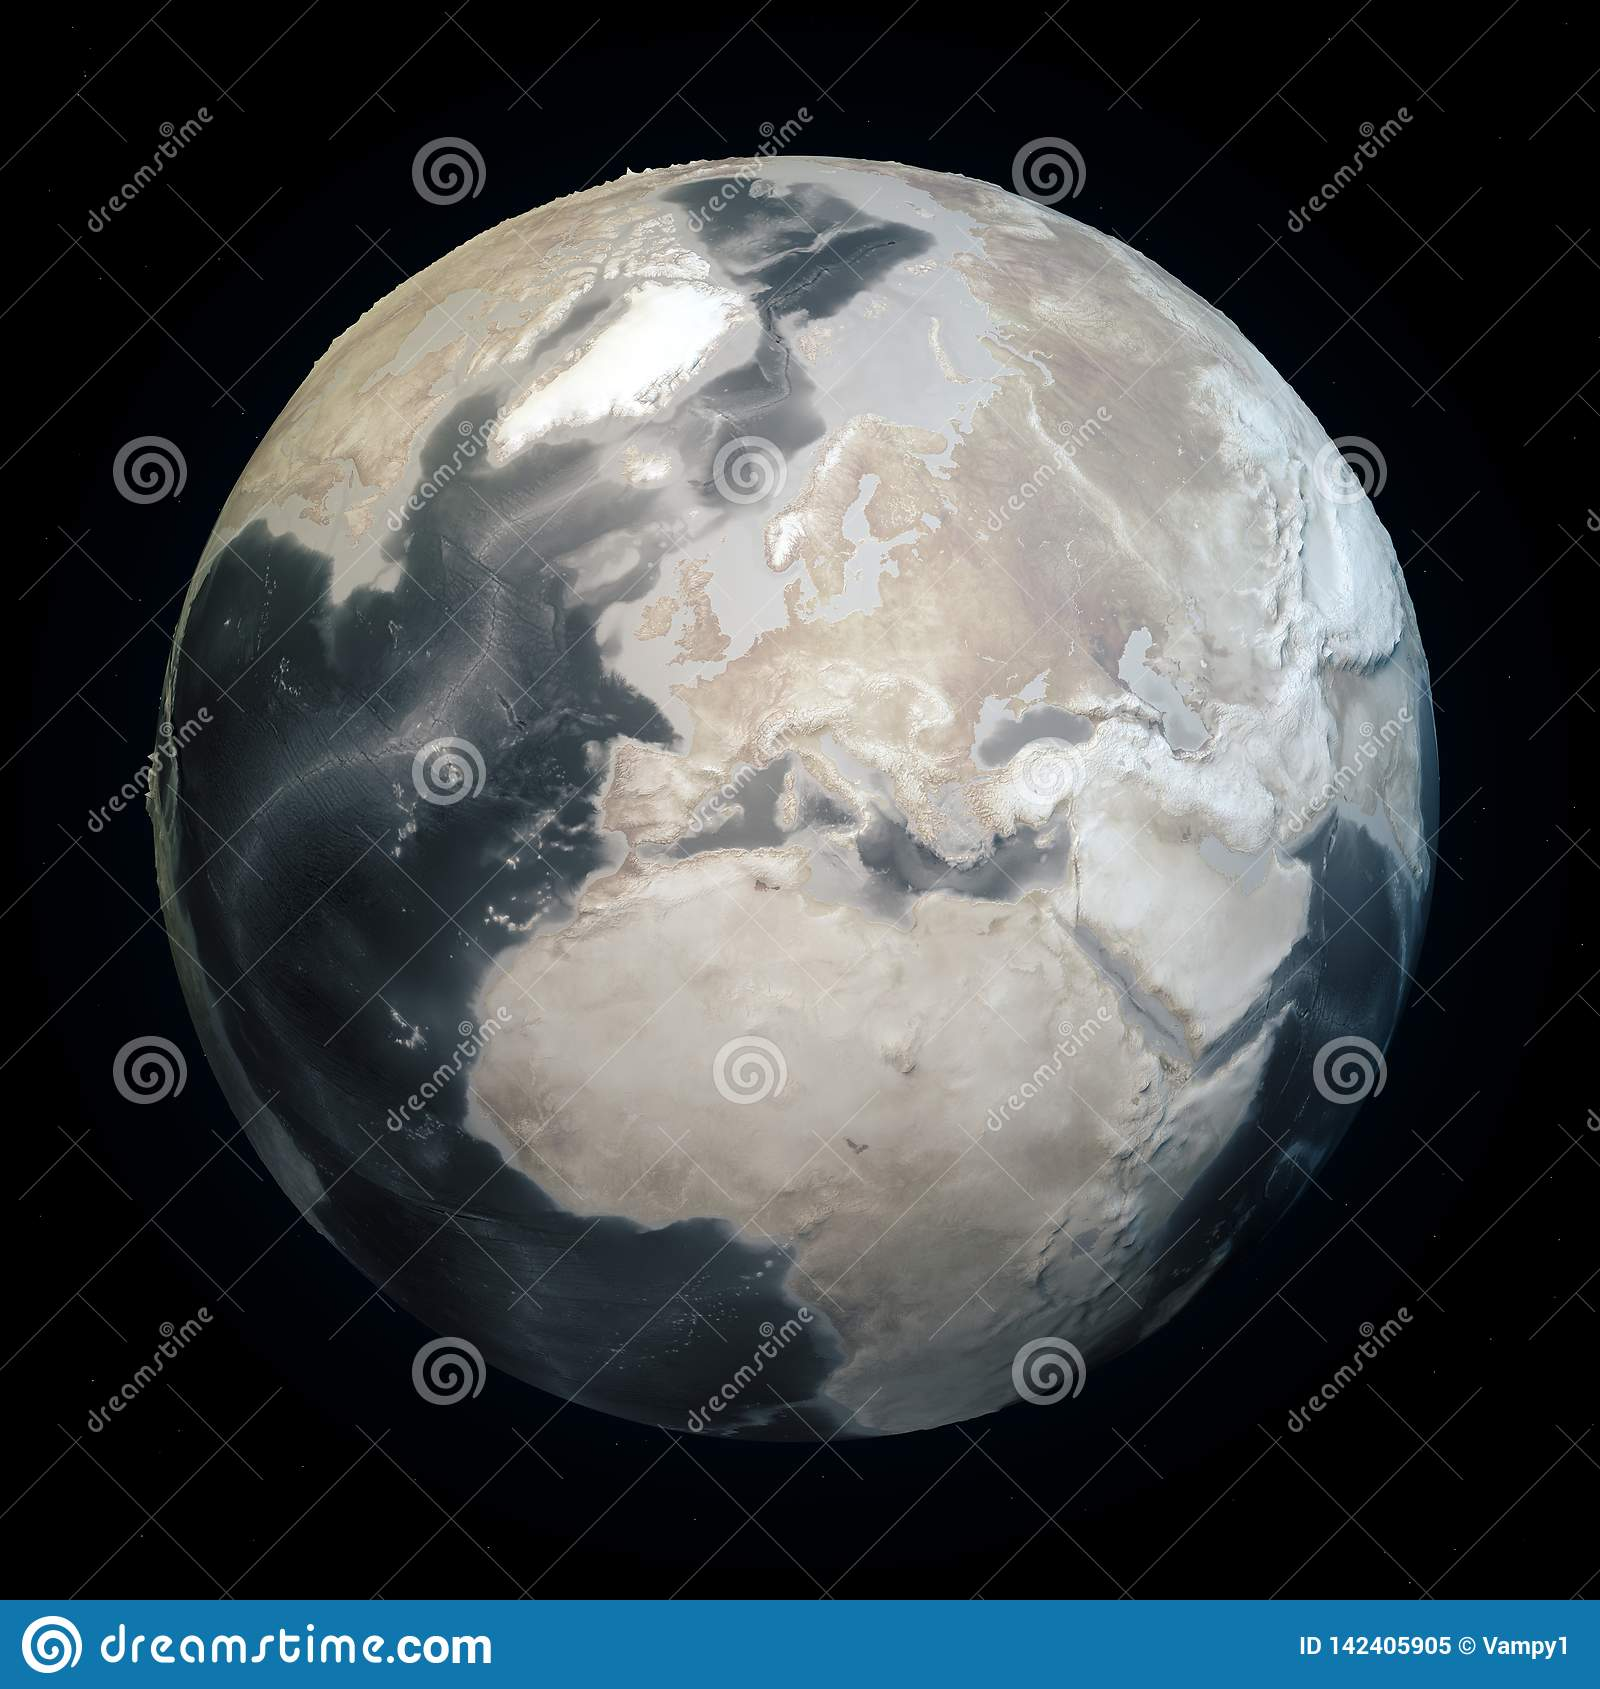 Drought in the world, dry planet earth. Climate change land without water. Seabed bathymetry with reliefs. Global warming